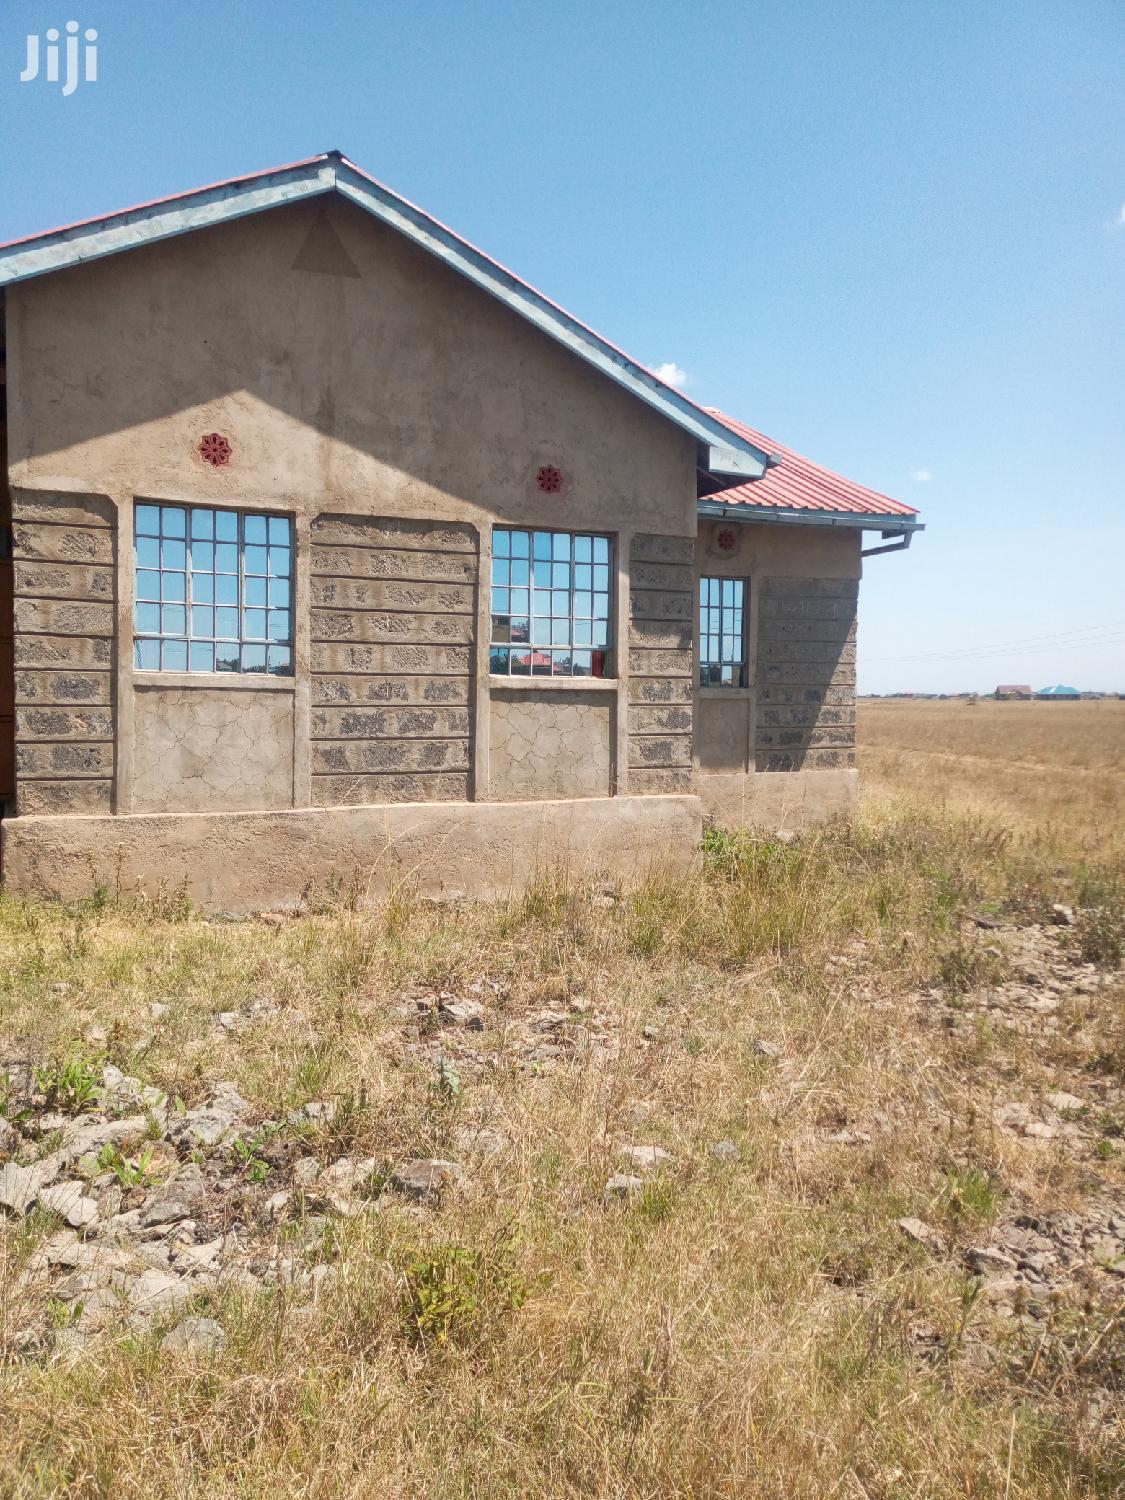 Residential House | Houses & Apartments For Sale for sale in Nairobi Central, Nairobi, Kenya